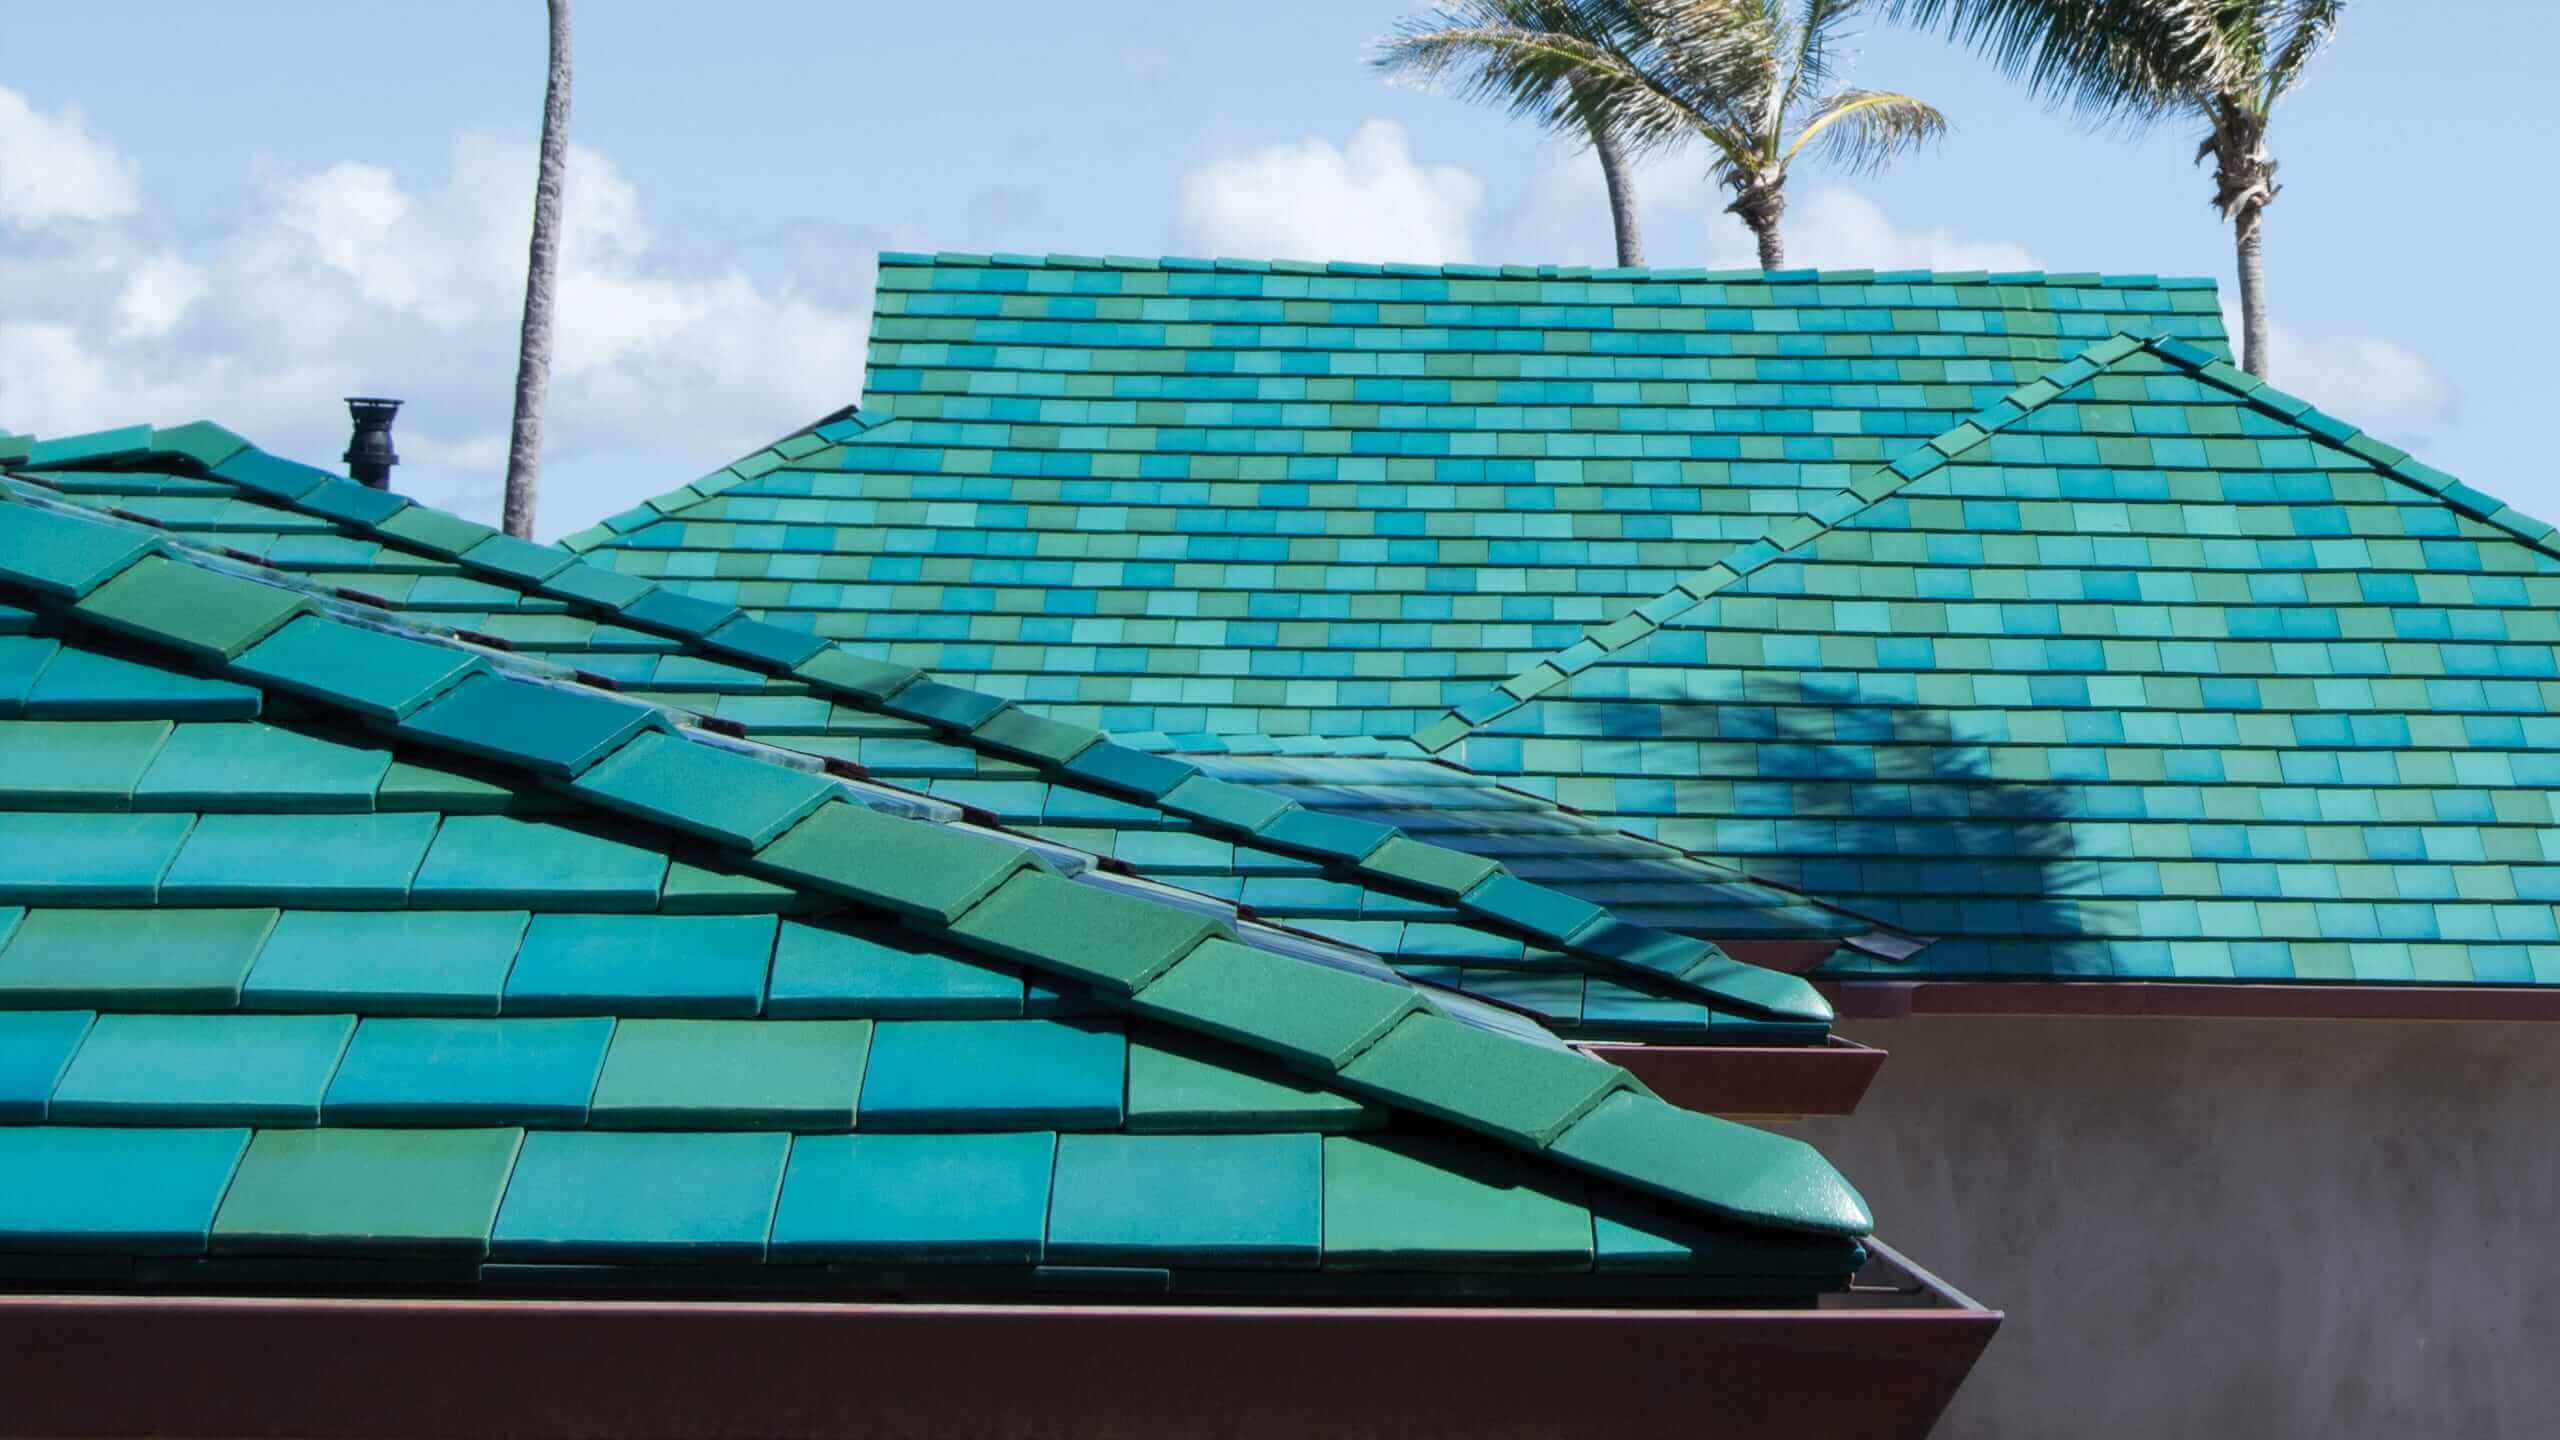 Maui Private Residence Ludowici Roof Tile